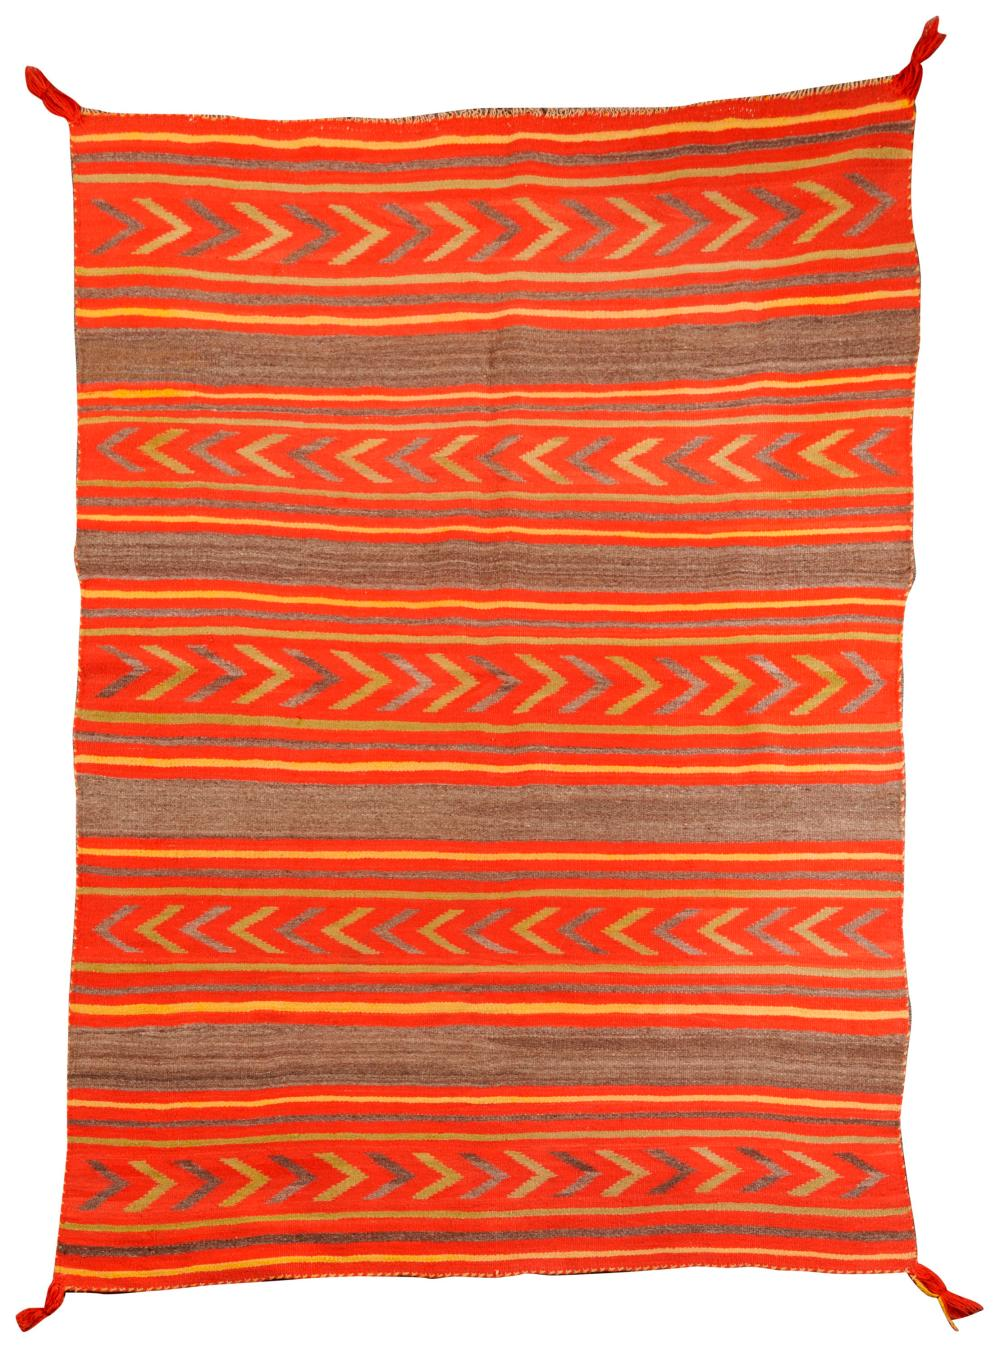 Transitional Navajo Wearing Blanket; 5 ft. 3 in. x 3 ft. 10 in.